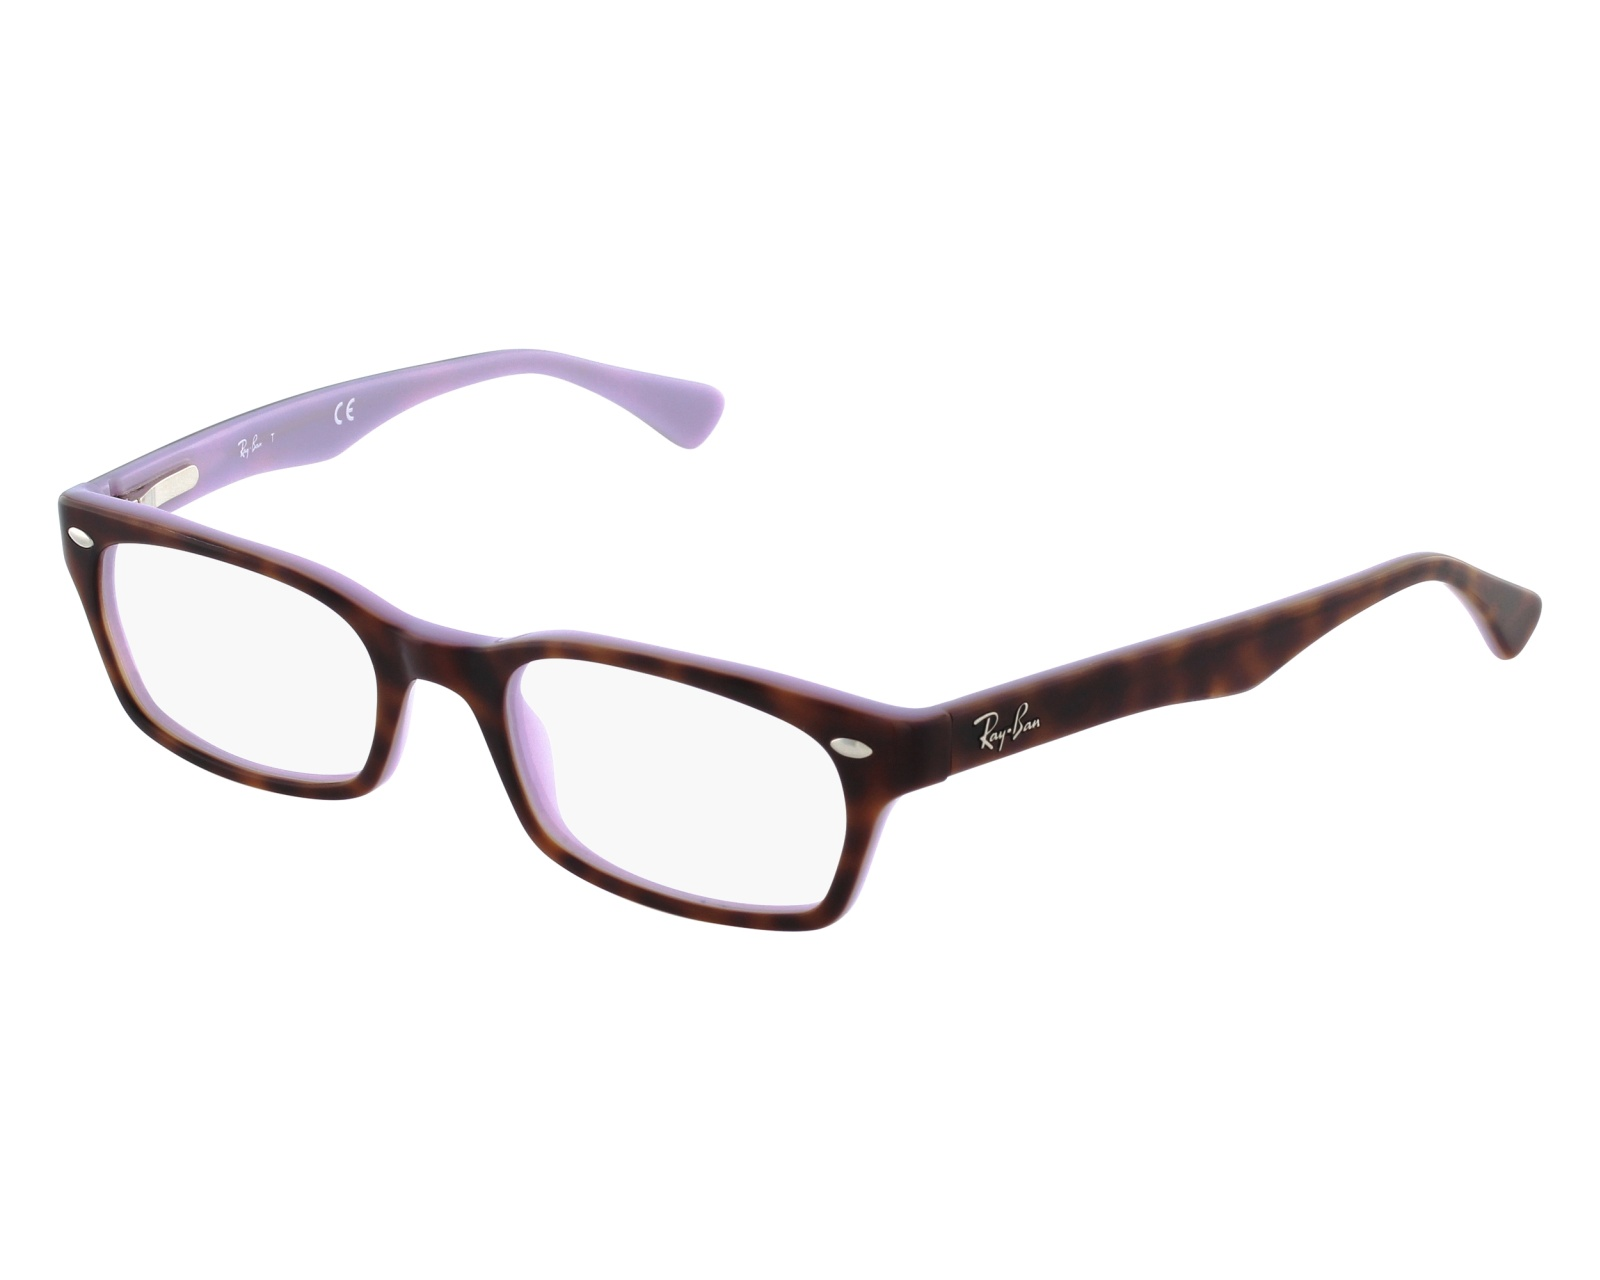 Ray-Ban Brille RX 5150 5240 Gr.50